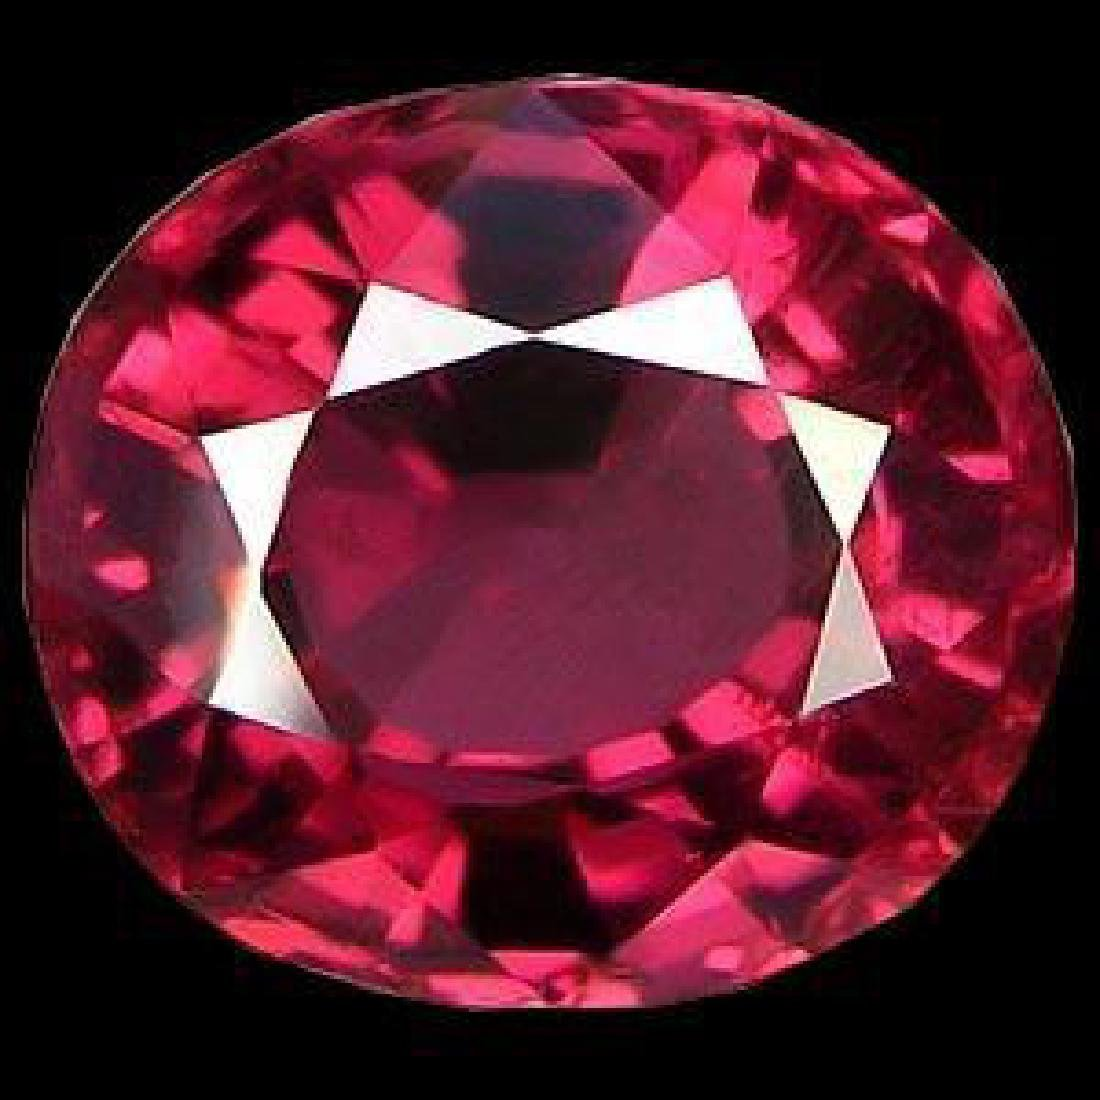 8.73ct Rubellite Tourmaline Gemstone